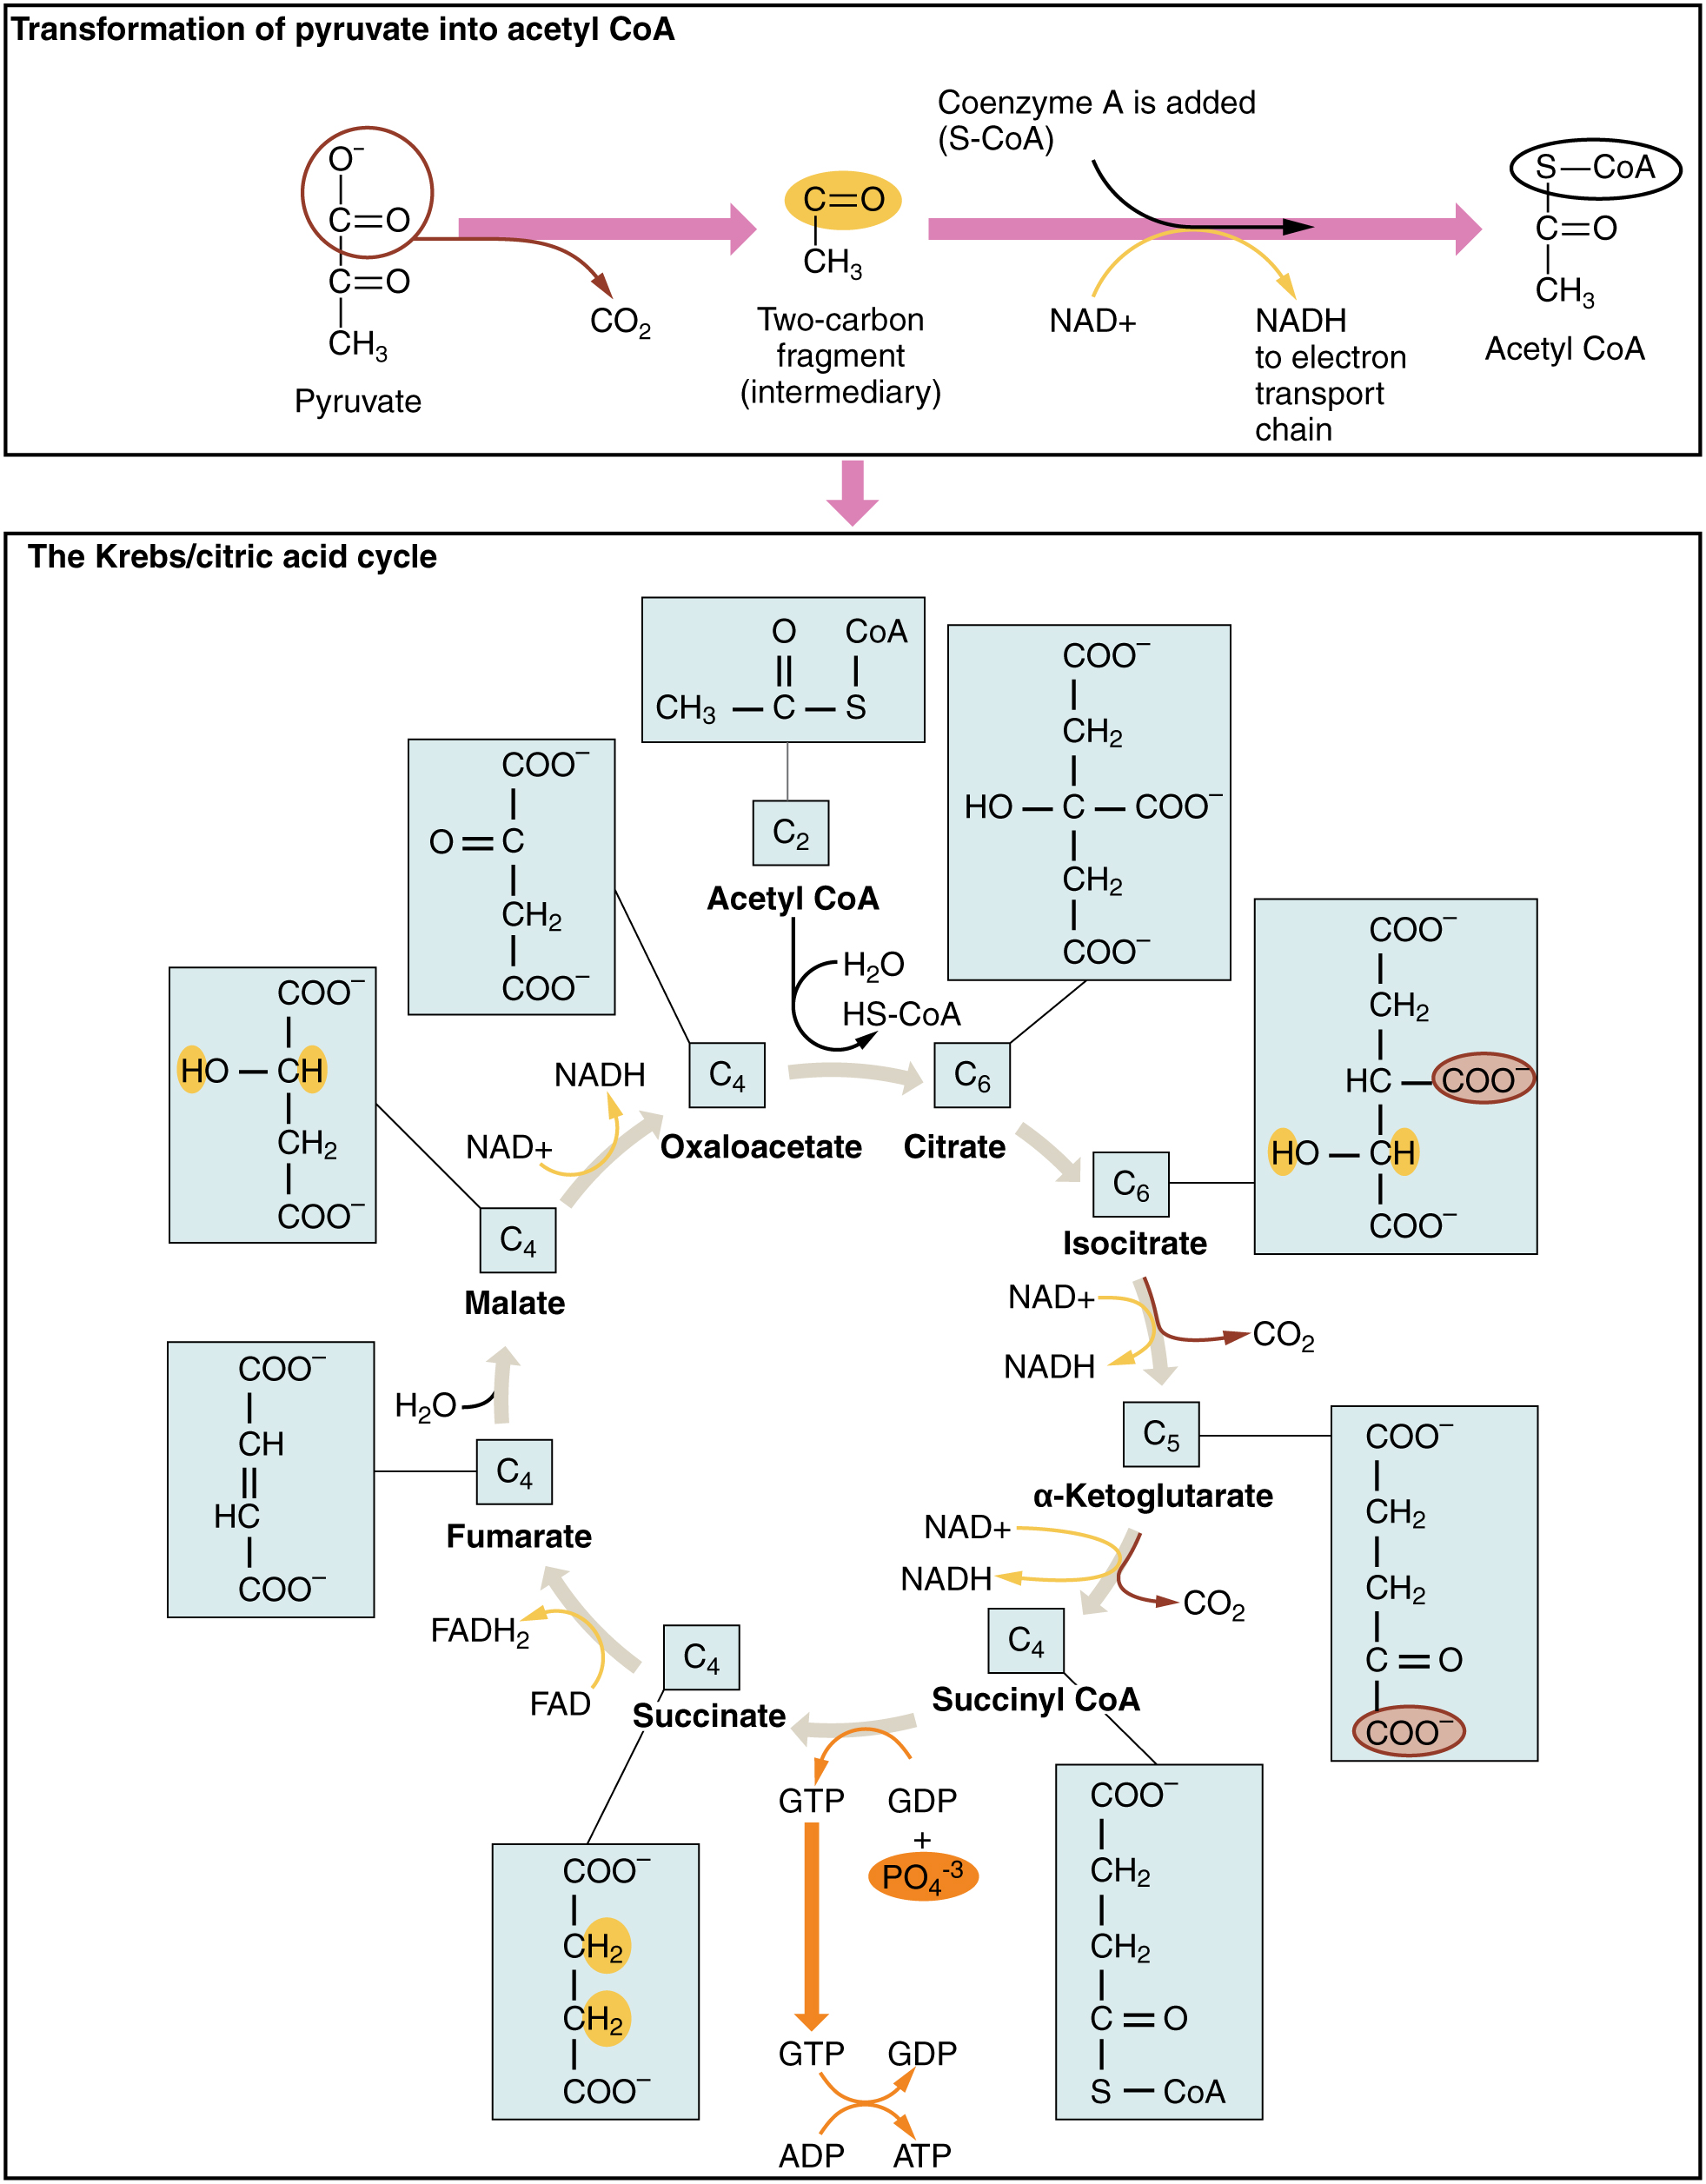 The top panel of this figure shows the transformation of pyruvate to acetyl-CoA, and the bottom panel shows the steps in Krebs cycle.